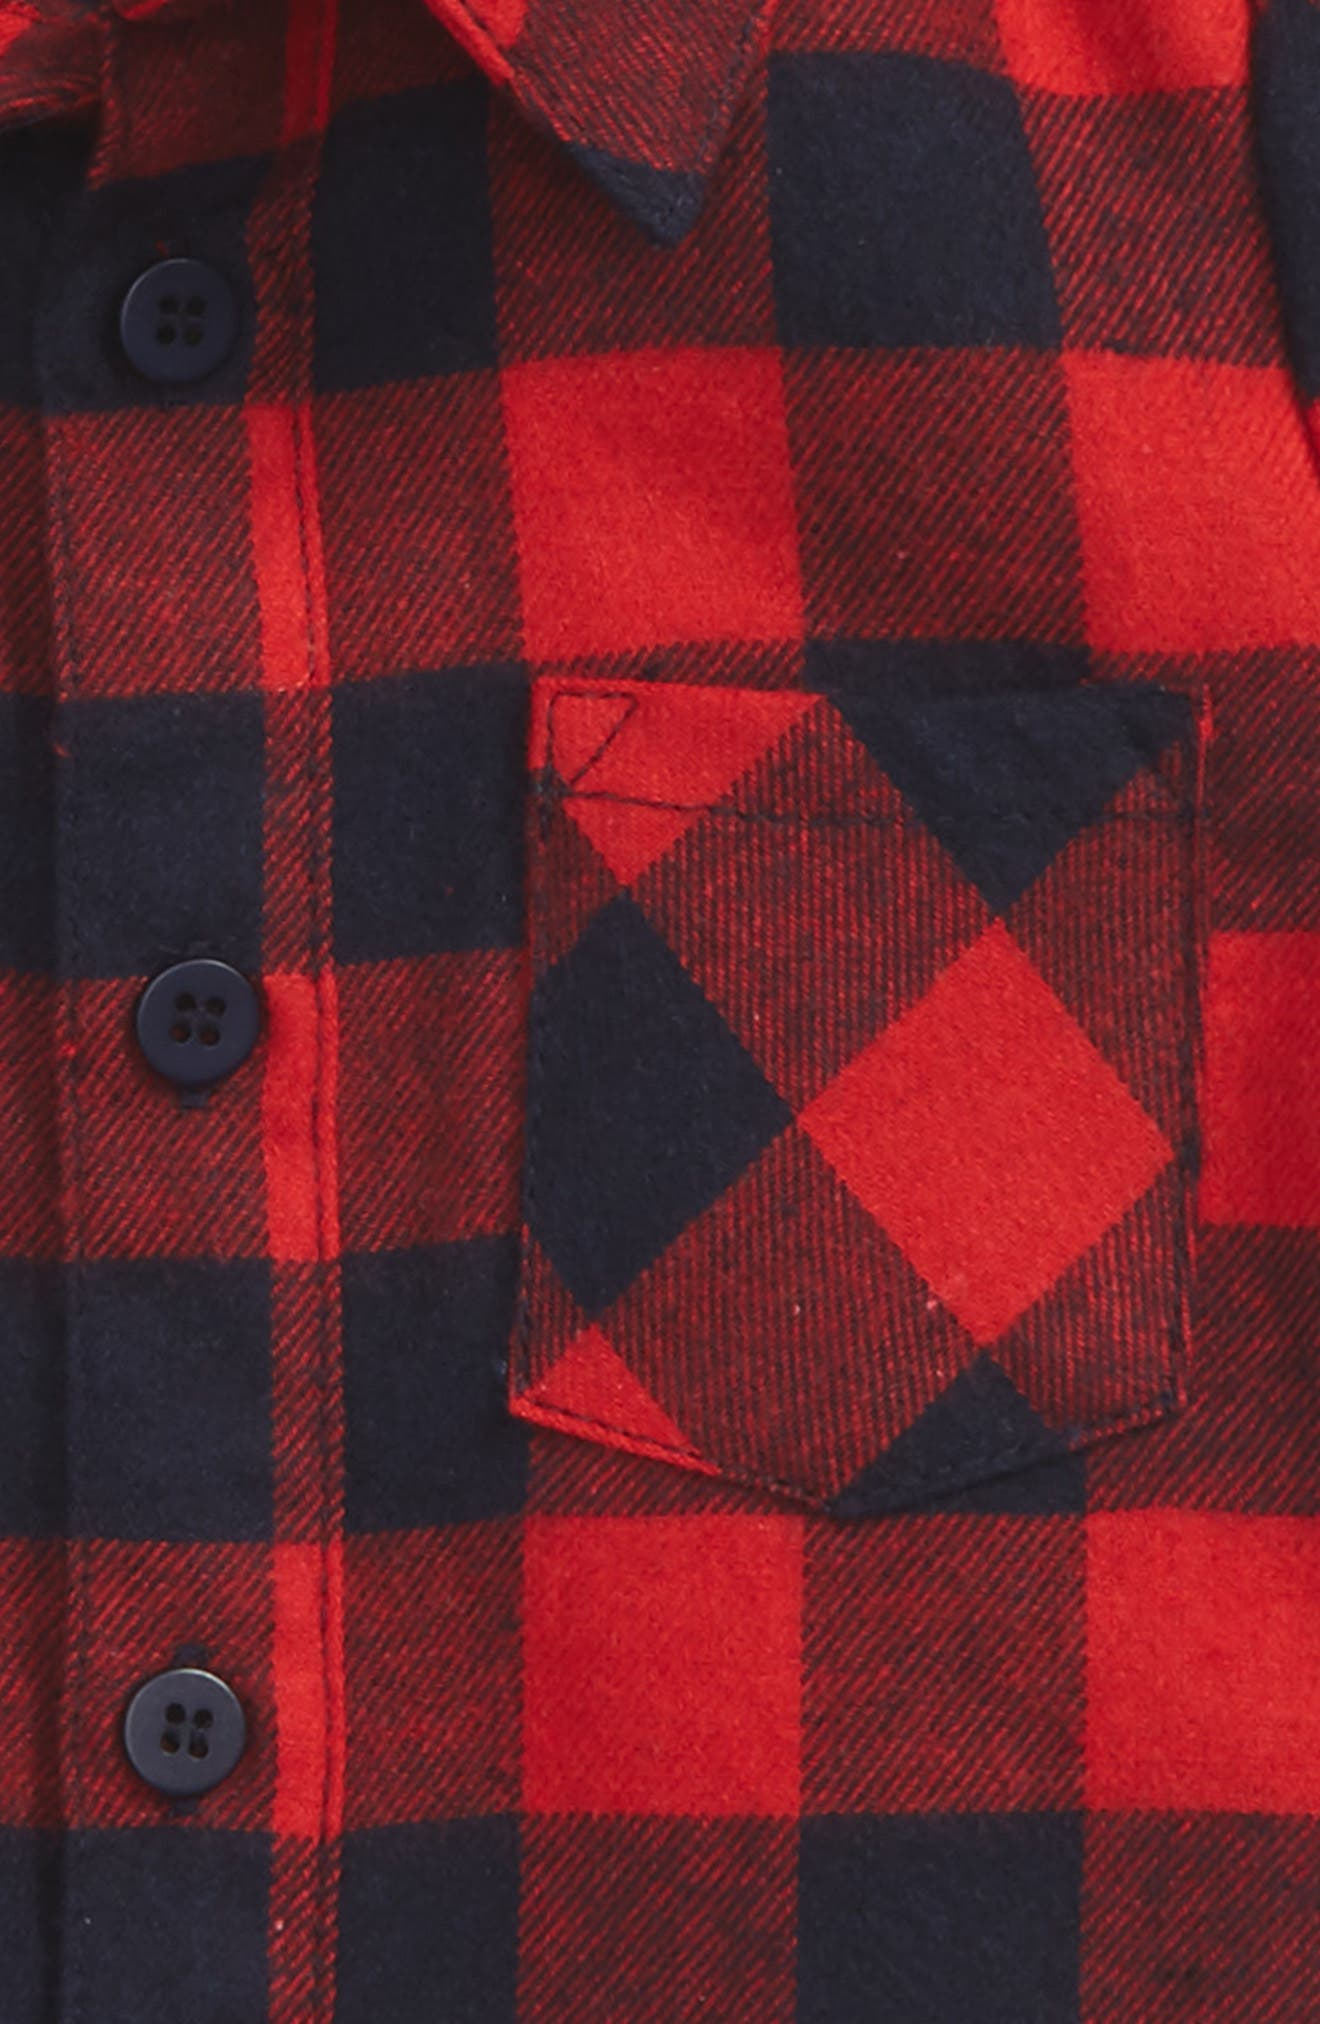 Lucky Check Woven Shirt,                             Alternate thumbnail 2, color,                             641